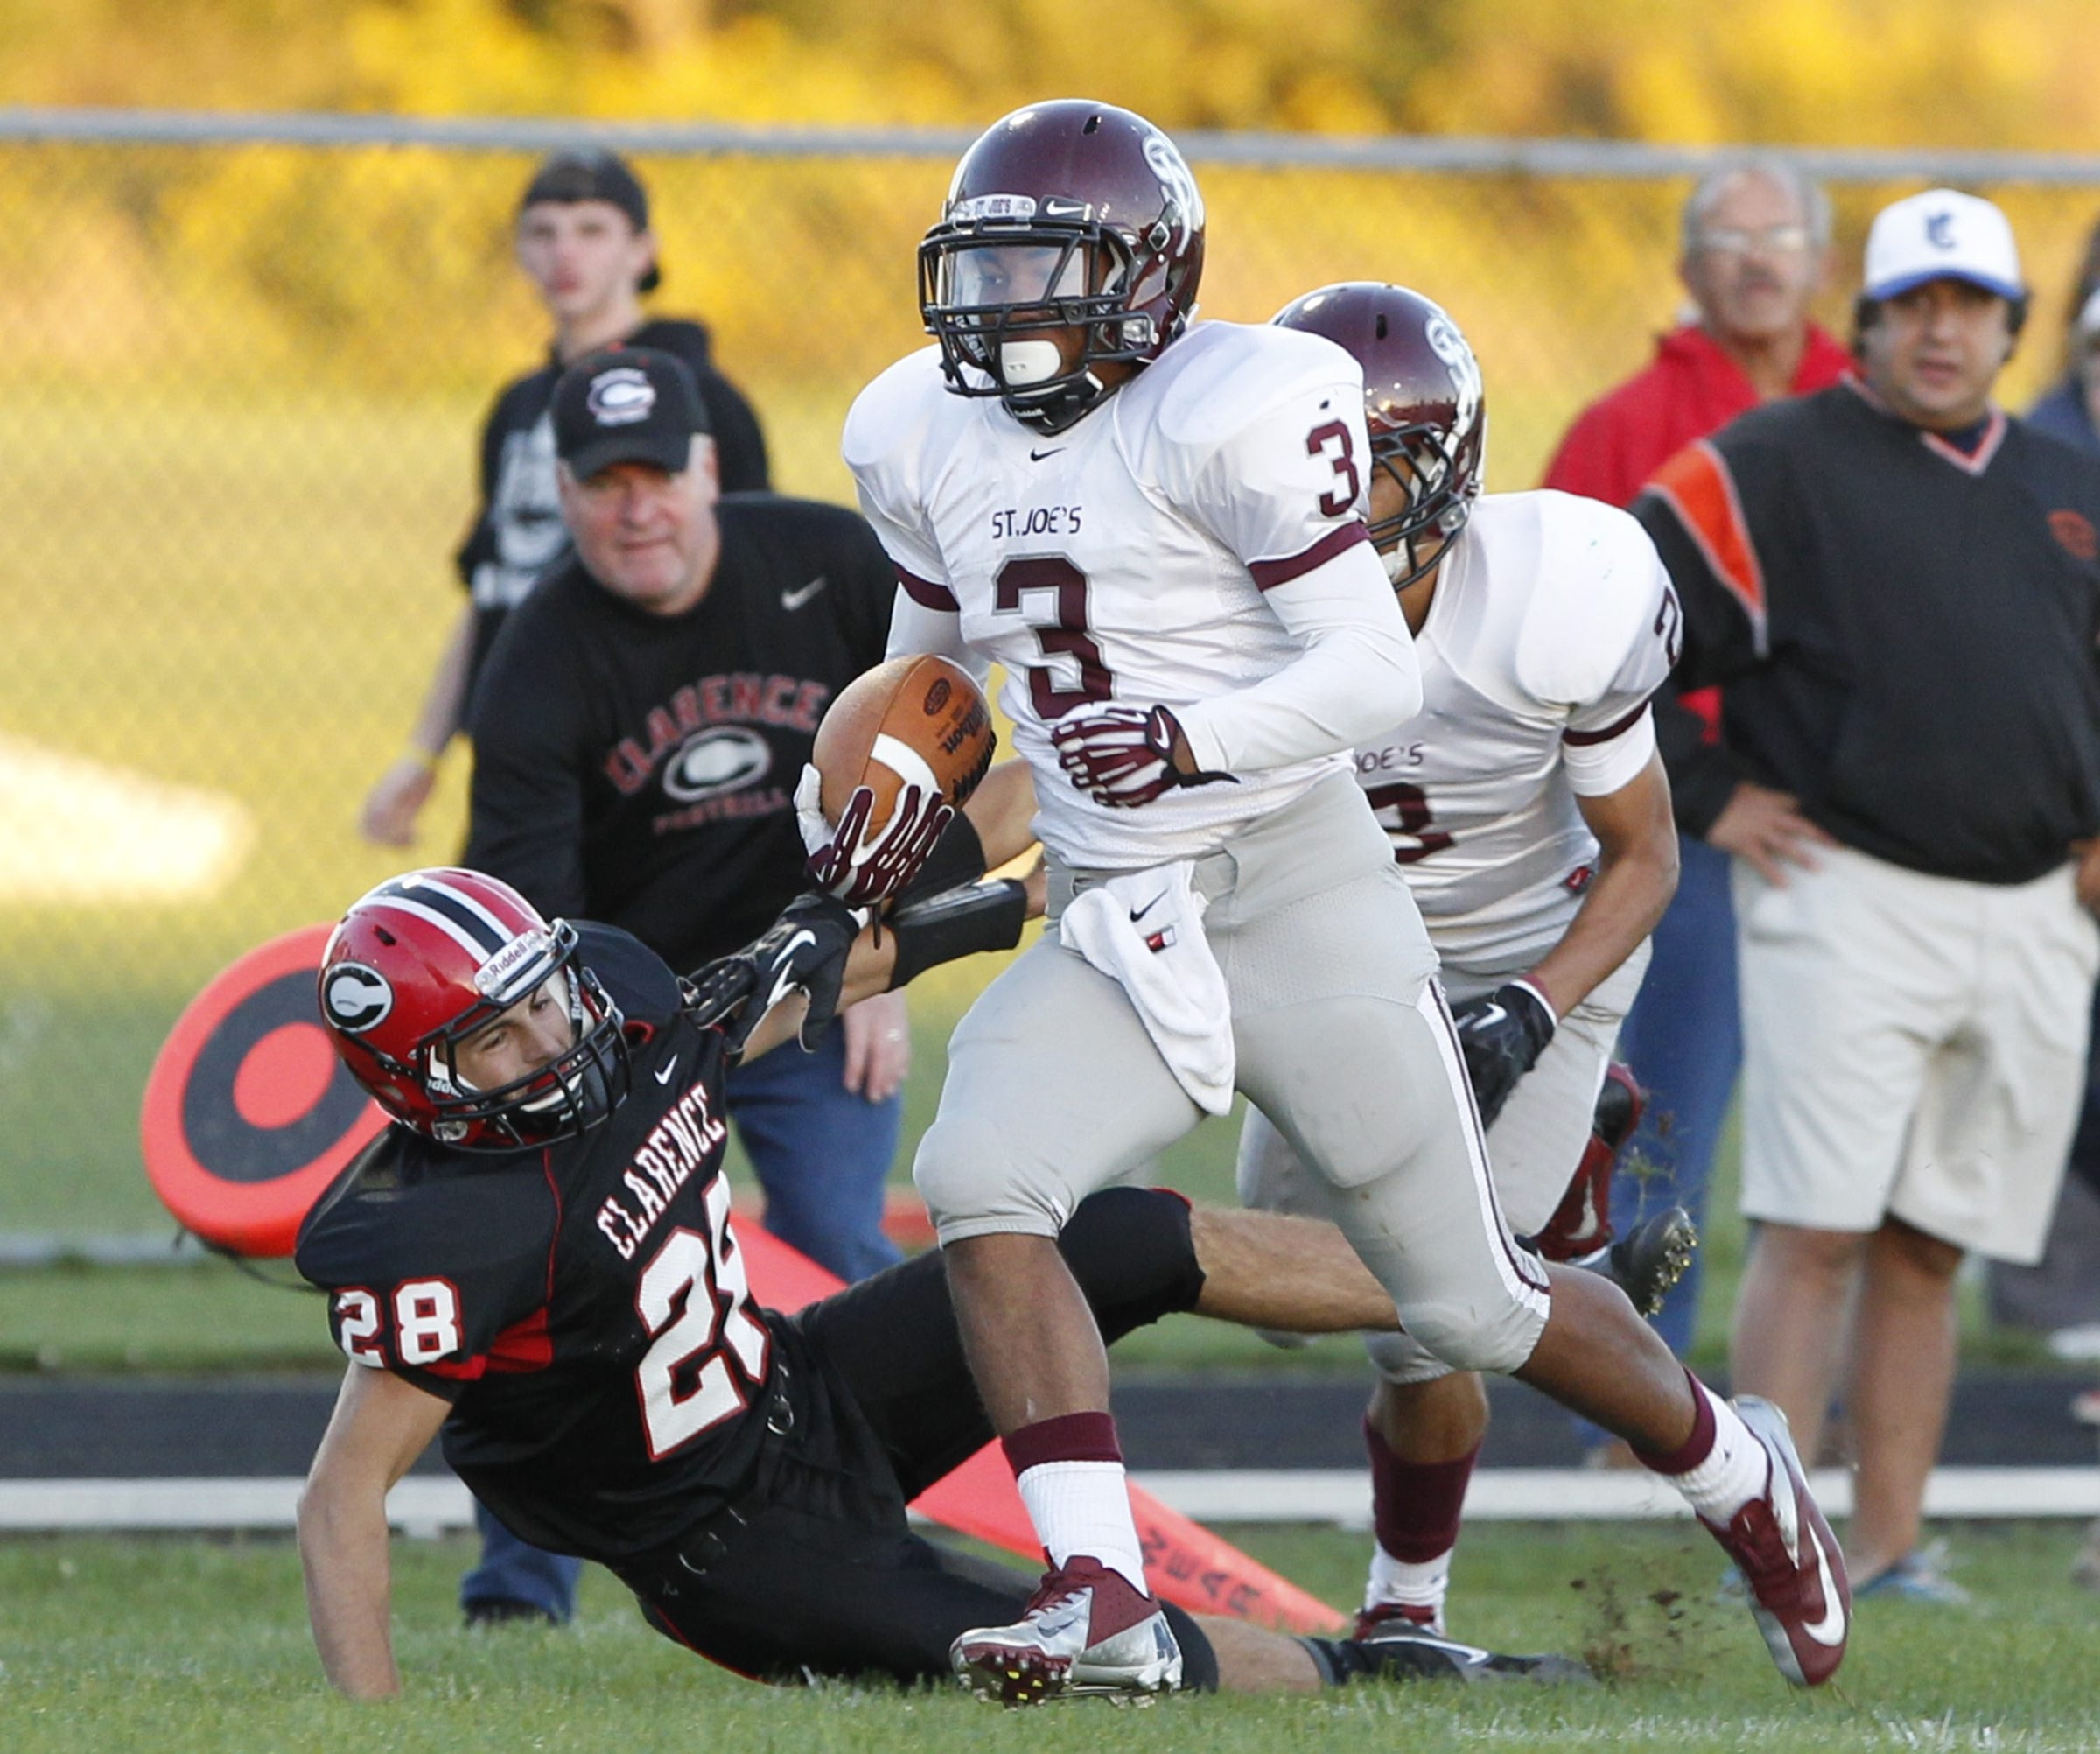 Nigel Davis scores one of his three touchdowns against Clarence during St. Joe's triumph.